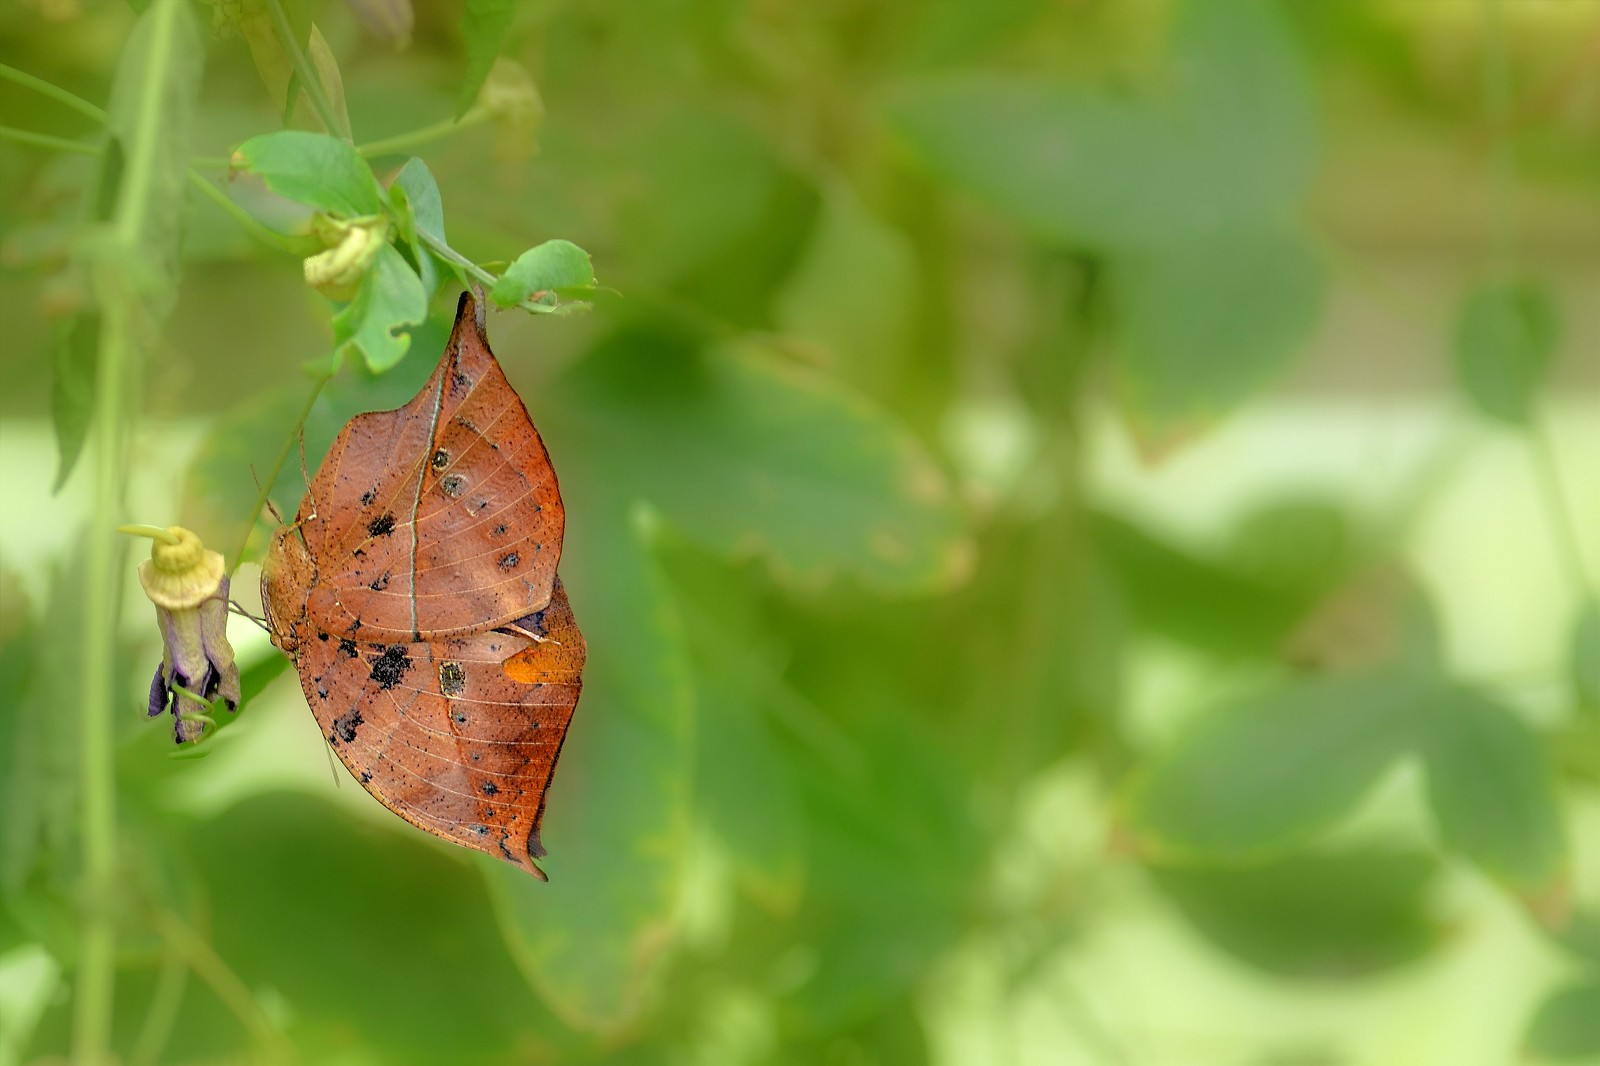 The Dead Leaf...... A Nature's Mimicry